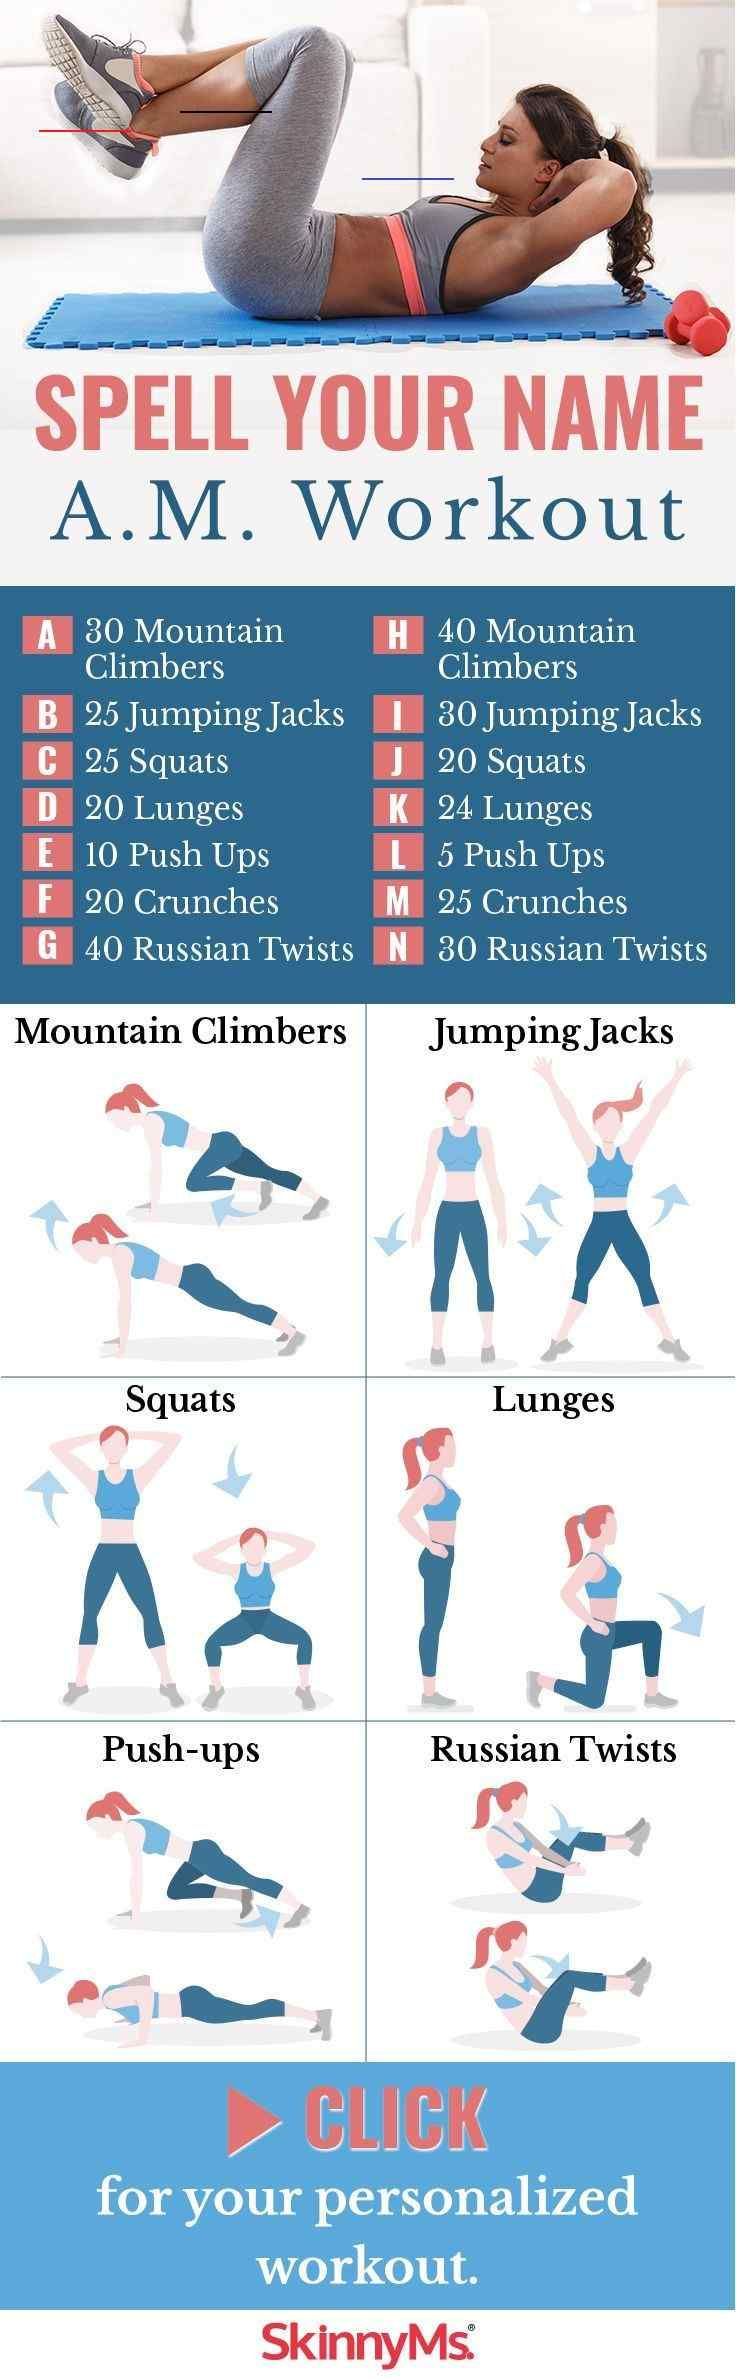 Try this Spell Your Name A.M. Workout if you're looking